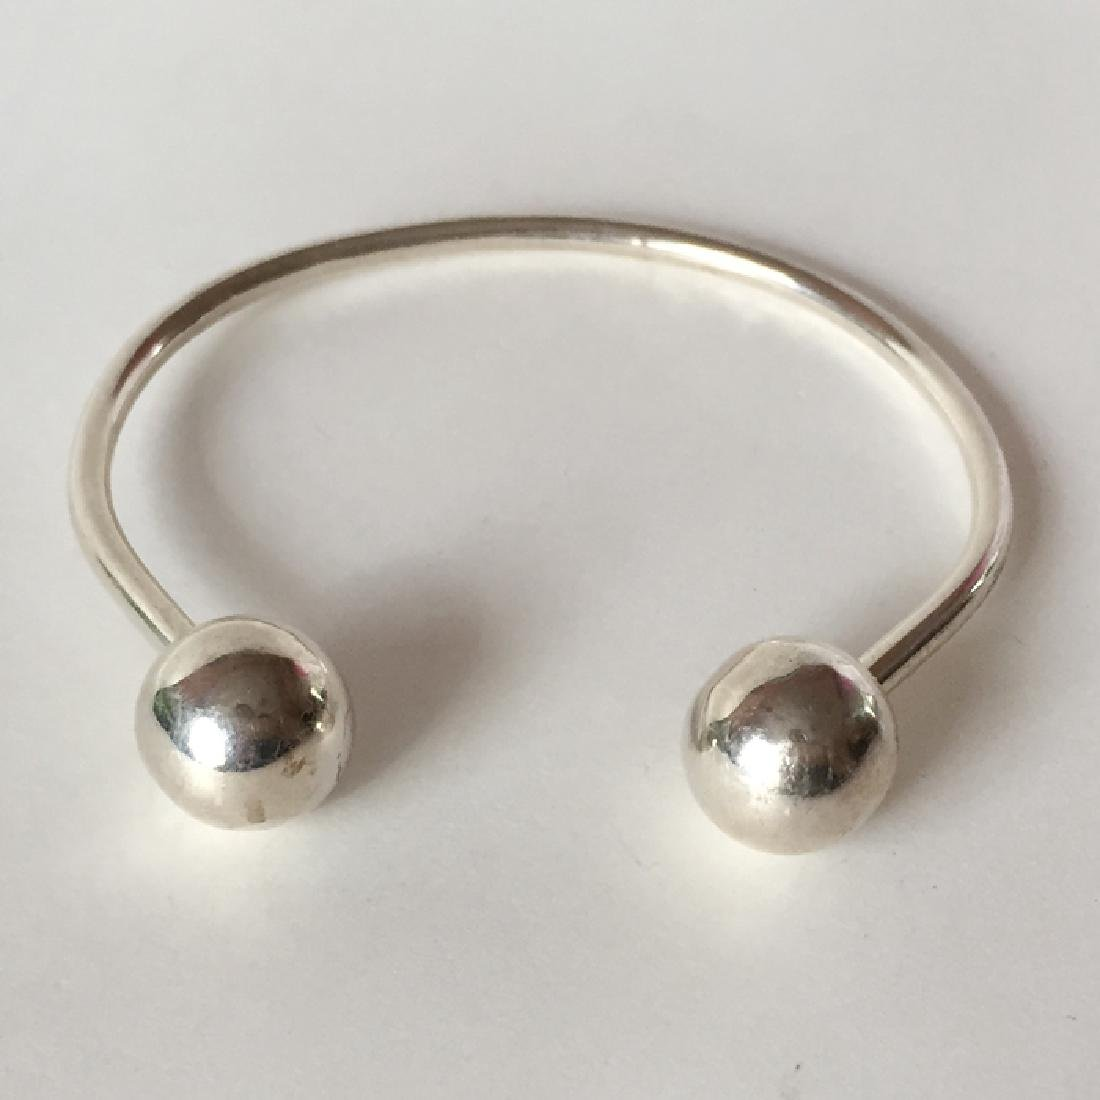 Sterling silver hand made cuff bracelet with 2 balls - 3